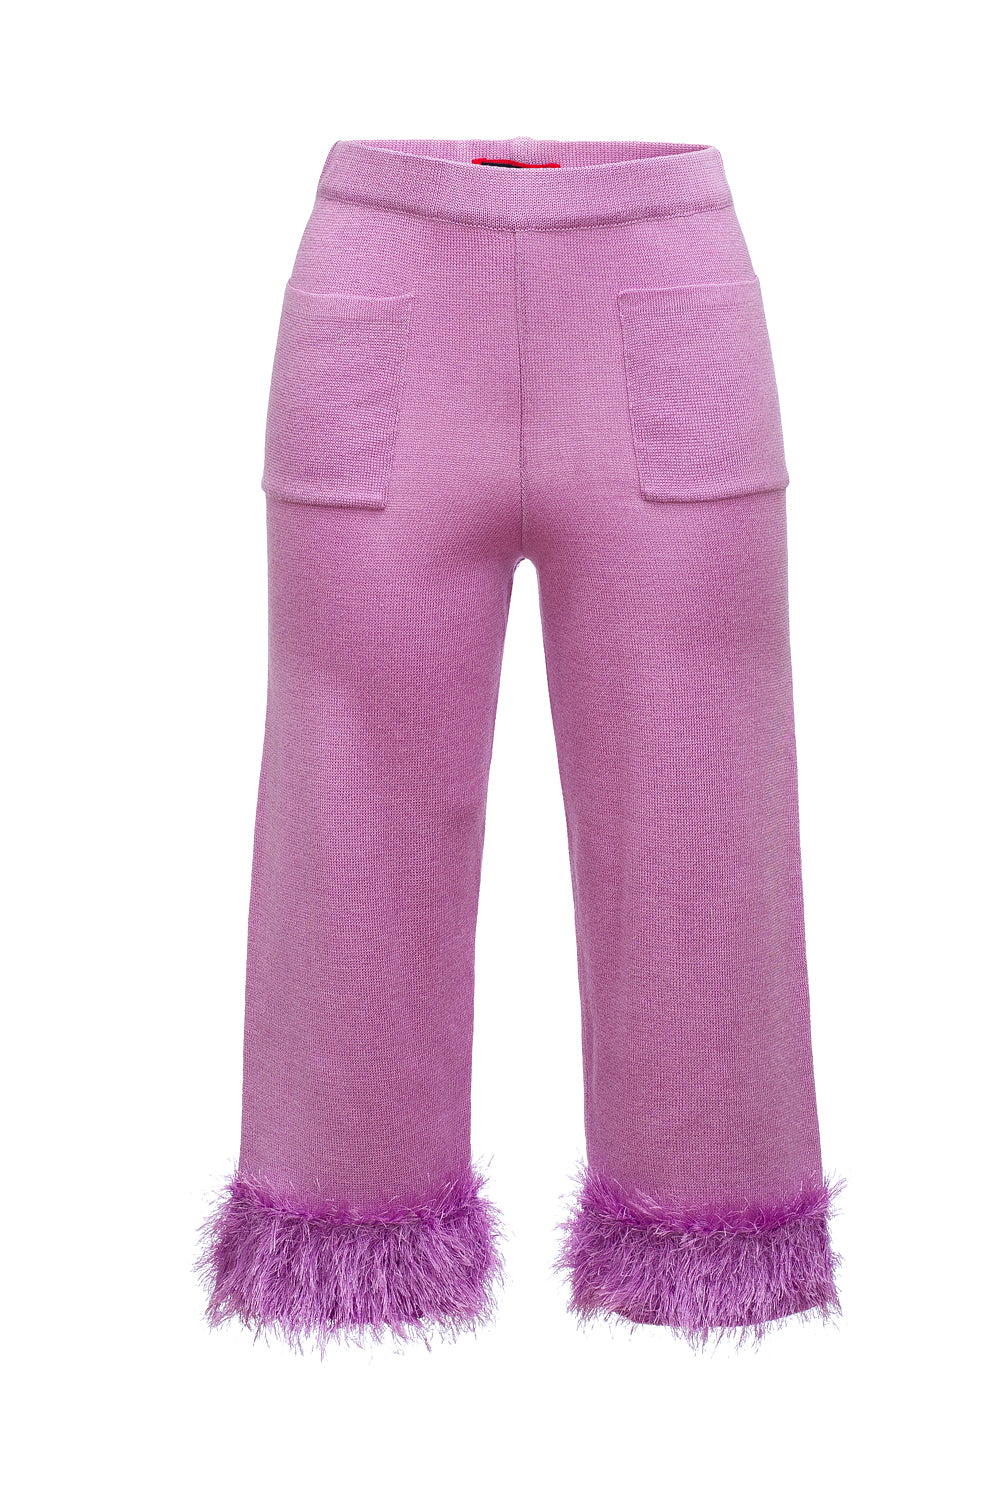 andreeva lavender knit pants